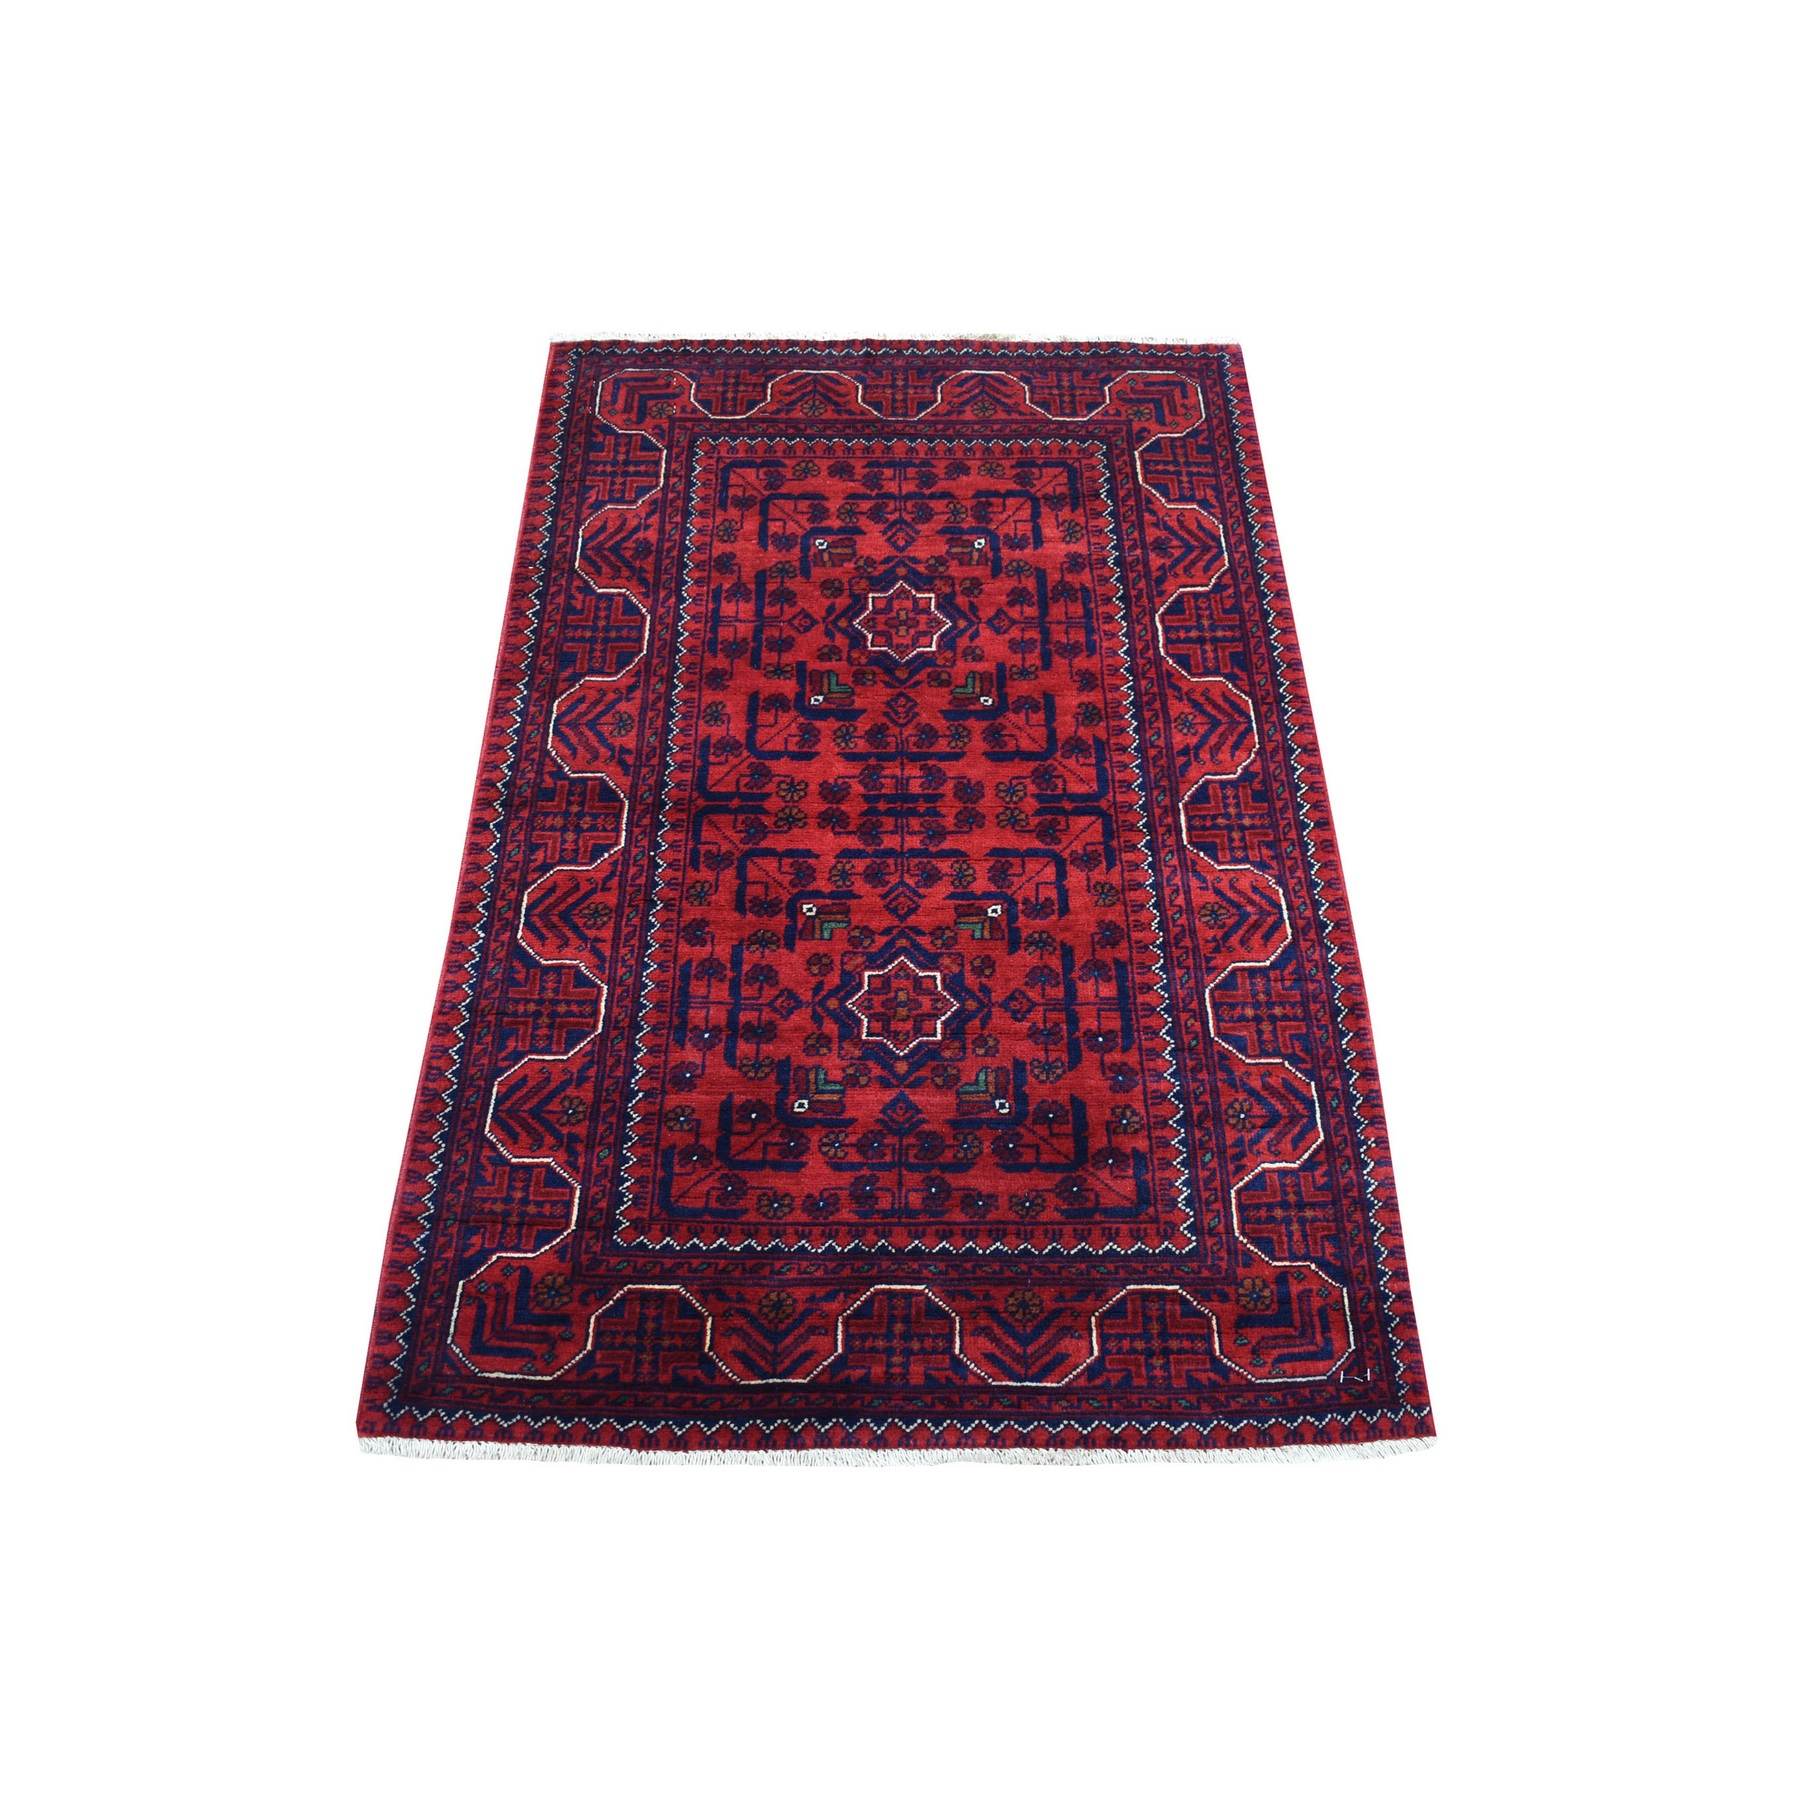 Nomadic And Village Collection Hand Knotted Red Rug No: 1136164